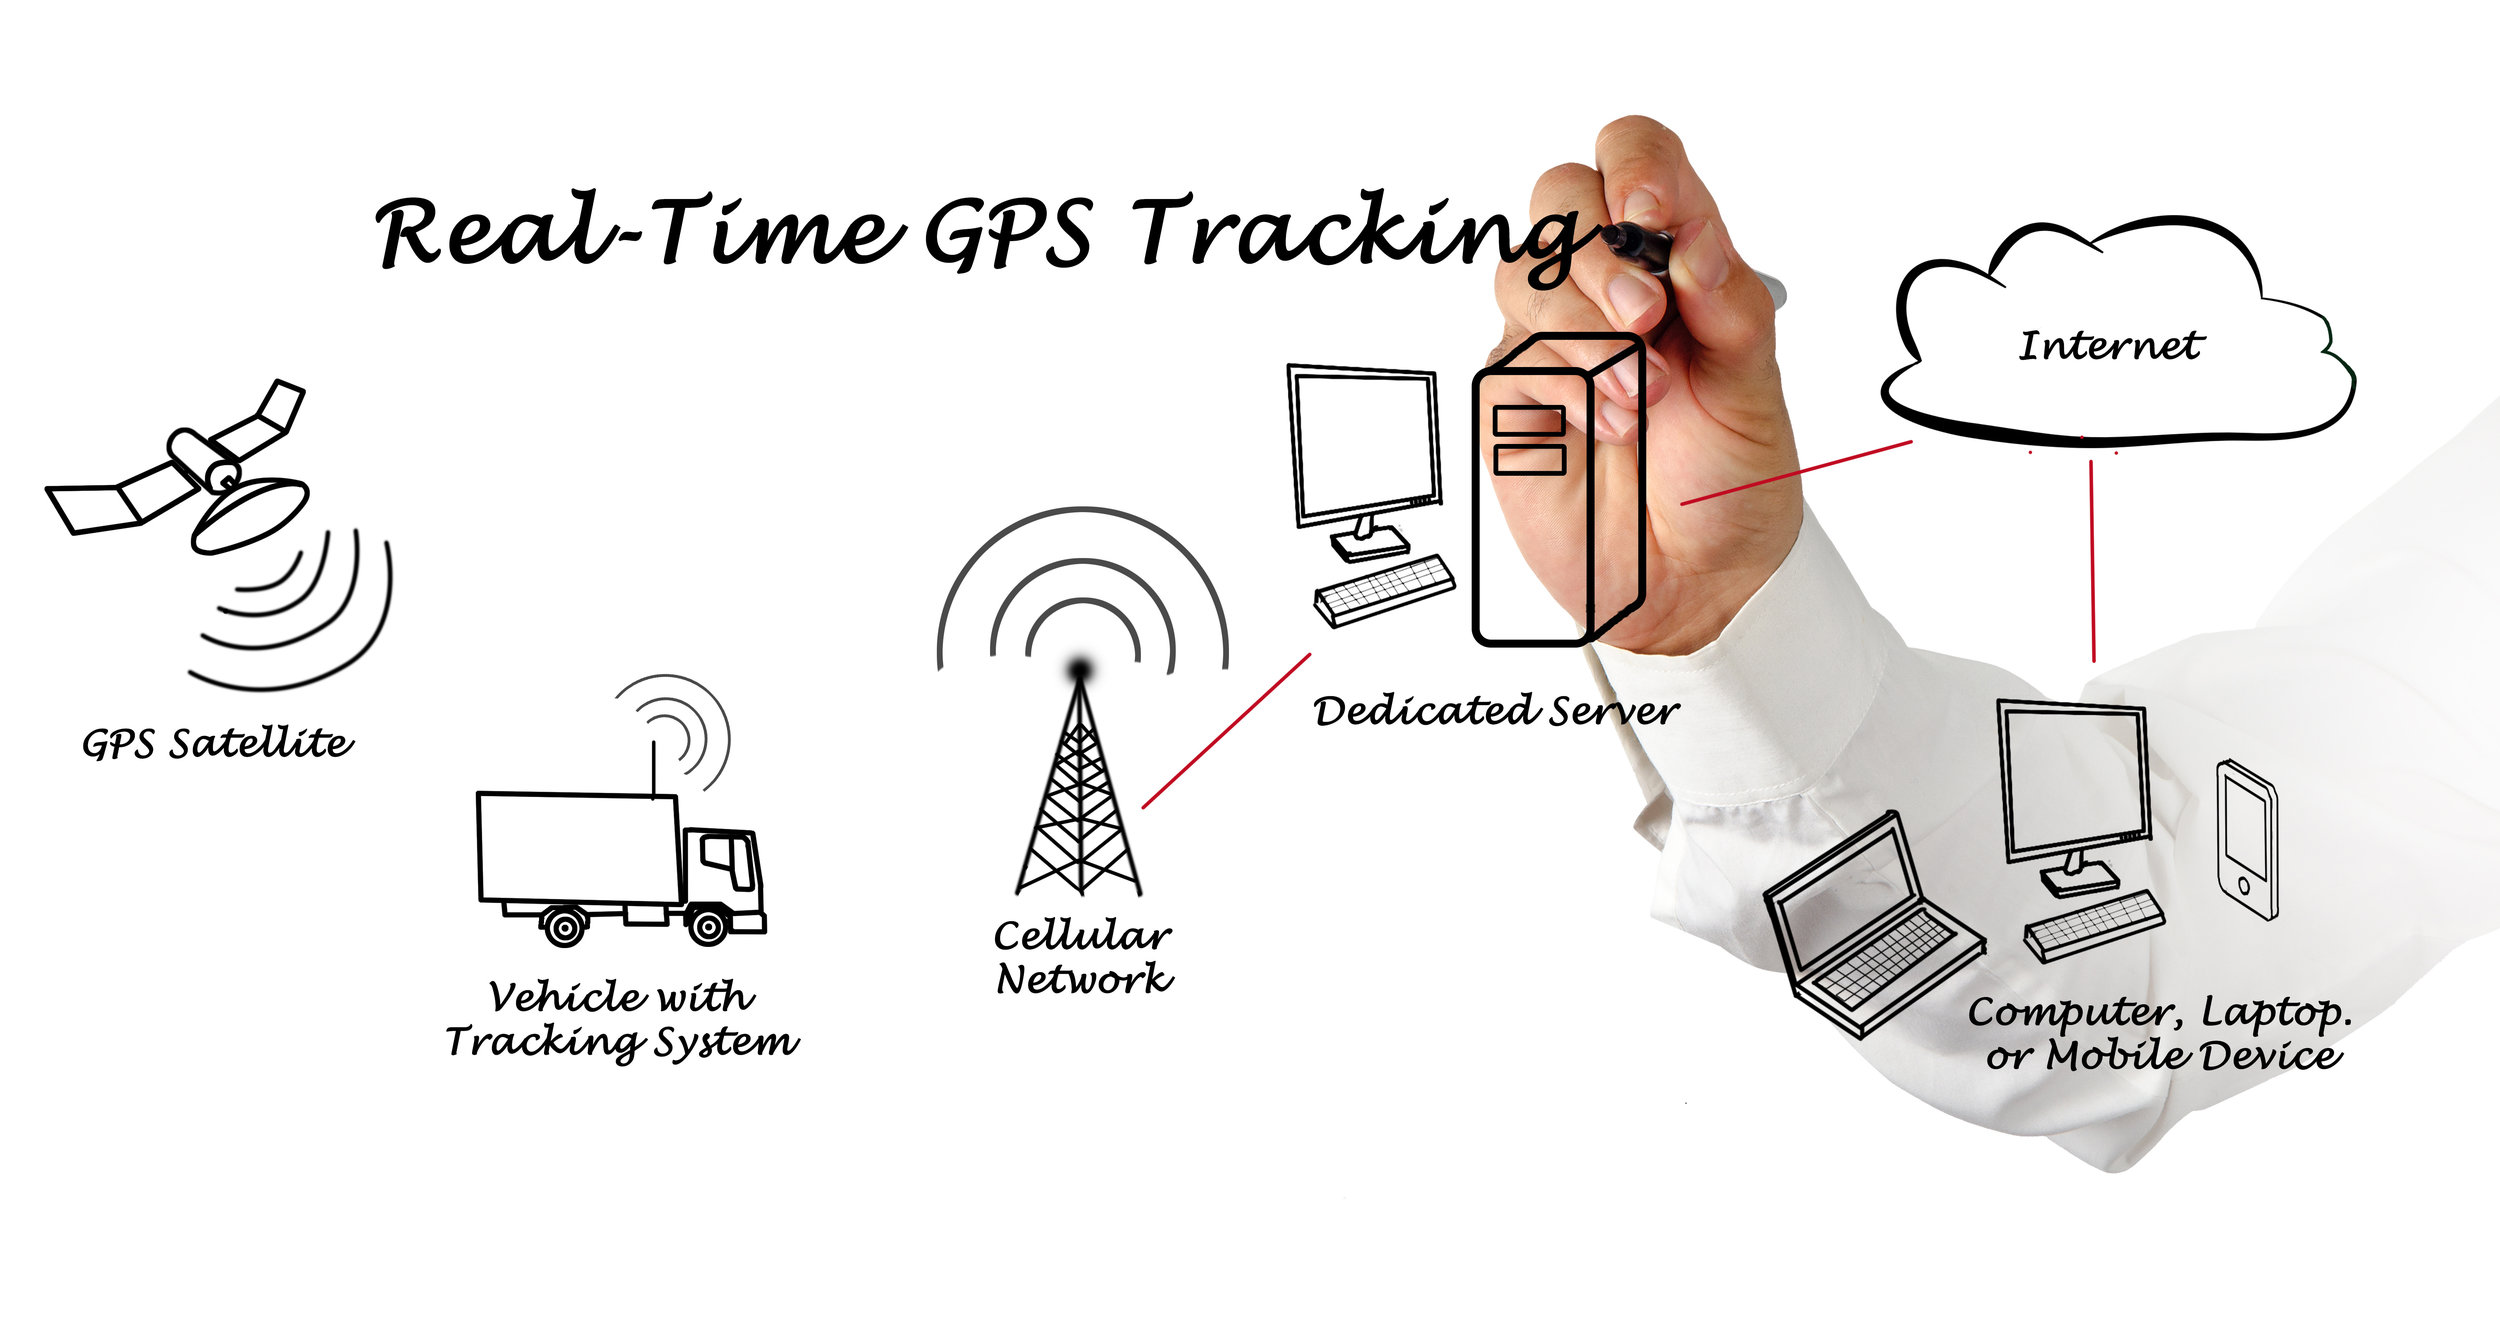 Diagram showing a GPS Satellite, truck with GPS system, cellular tower, computer server, internet and computer, laptop and mobile device.